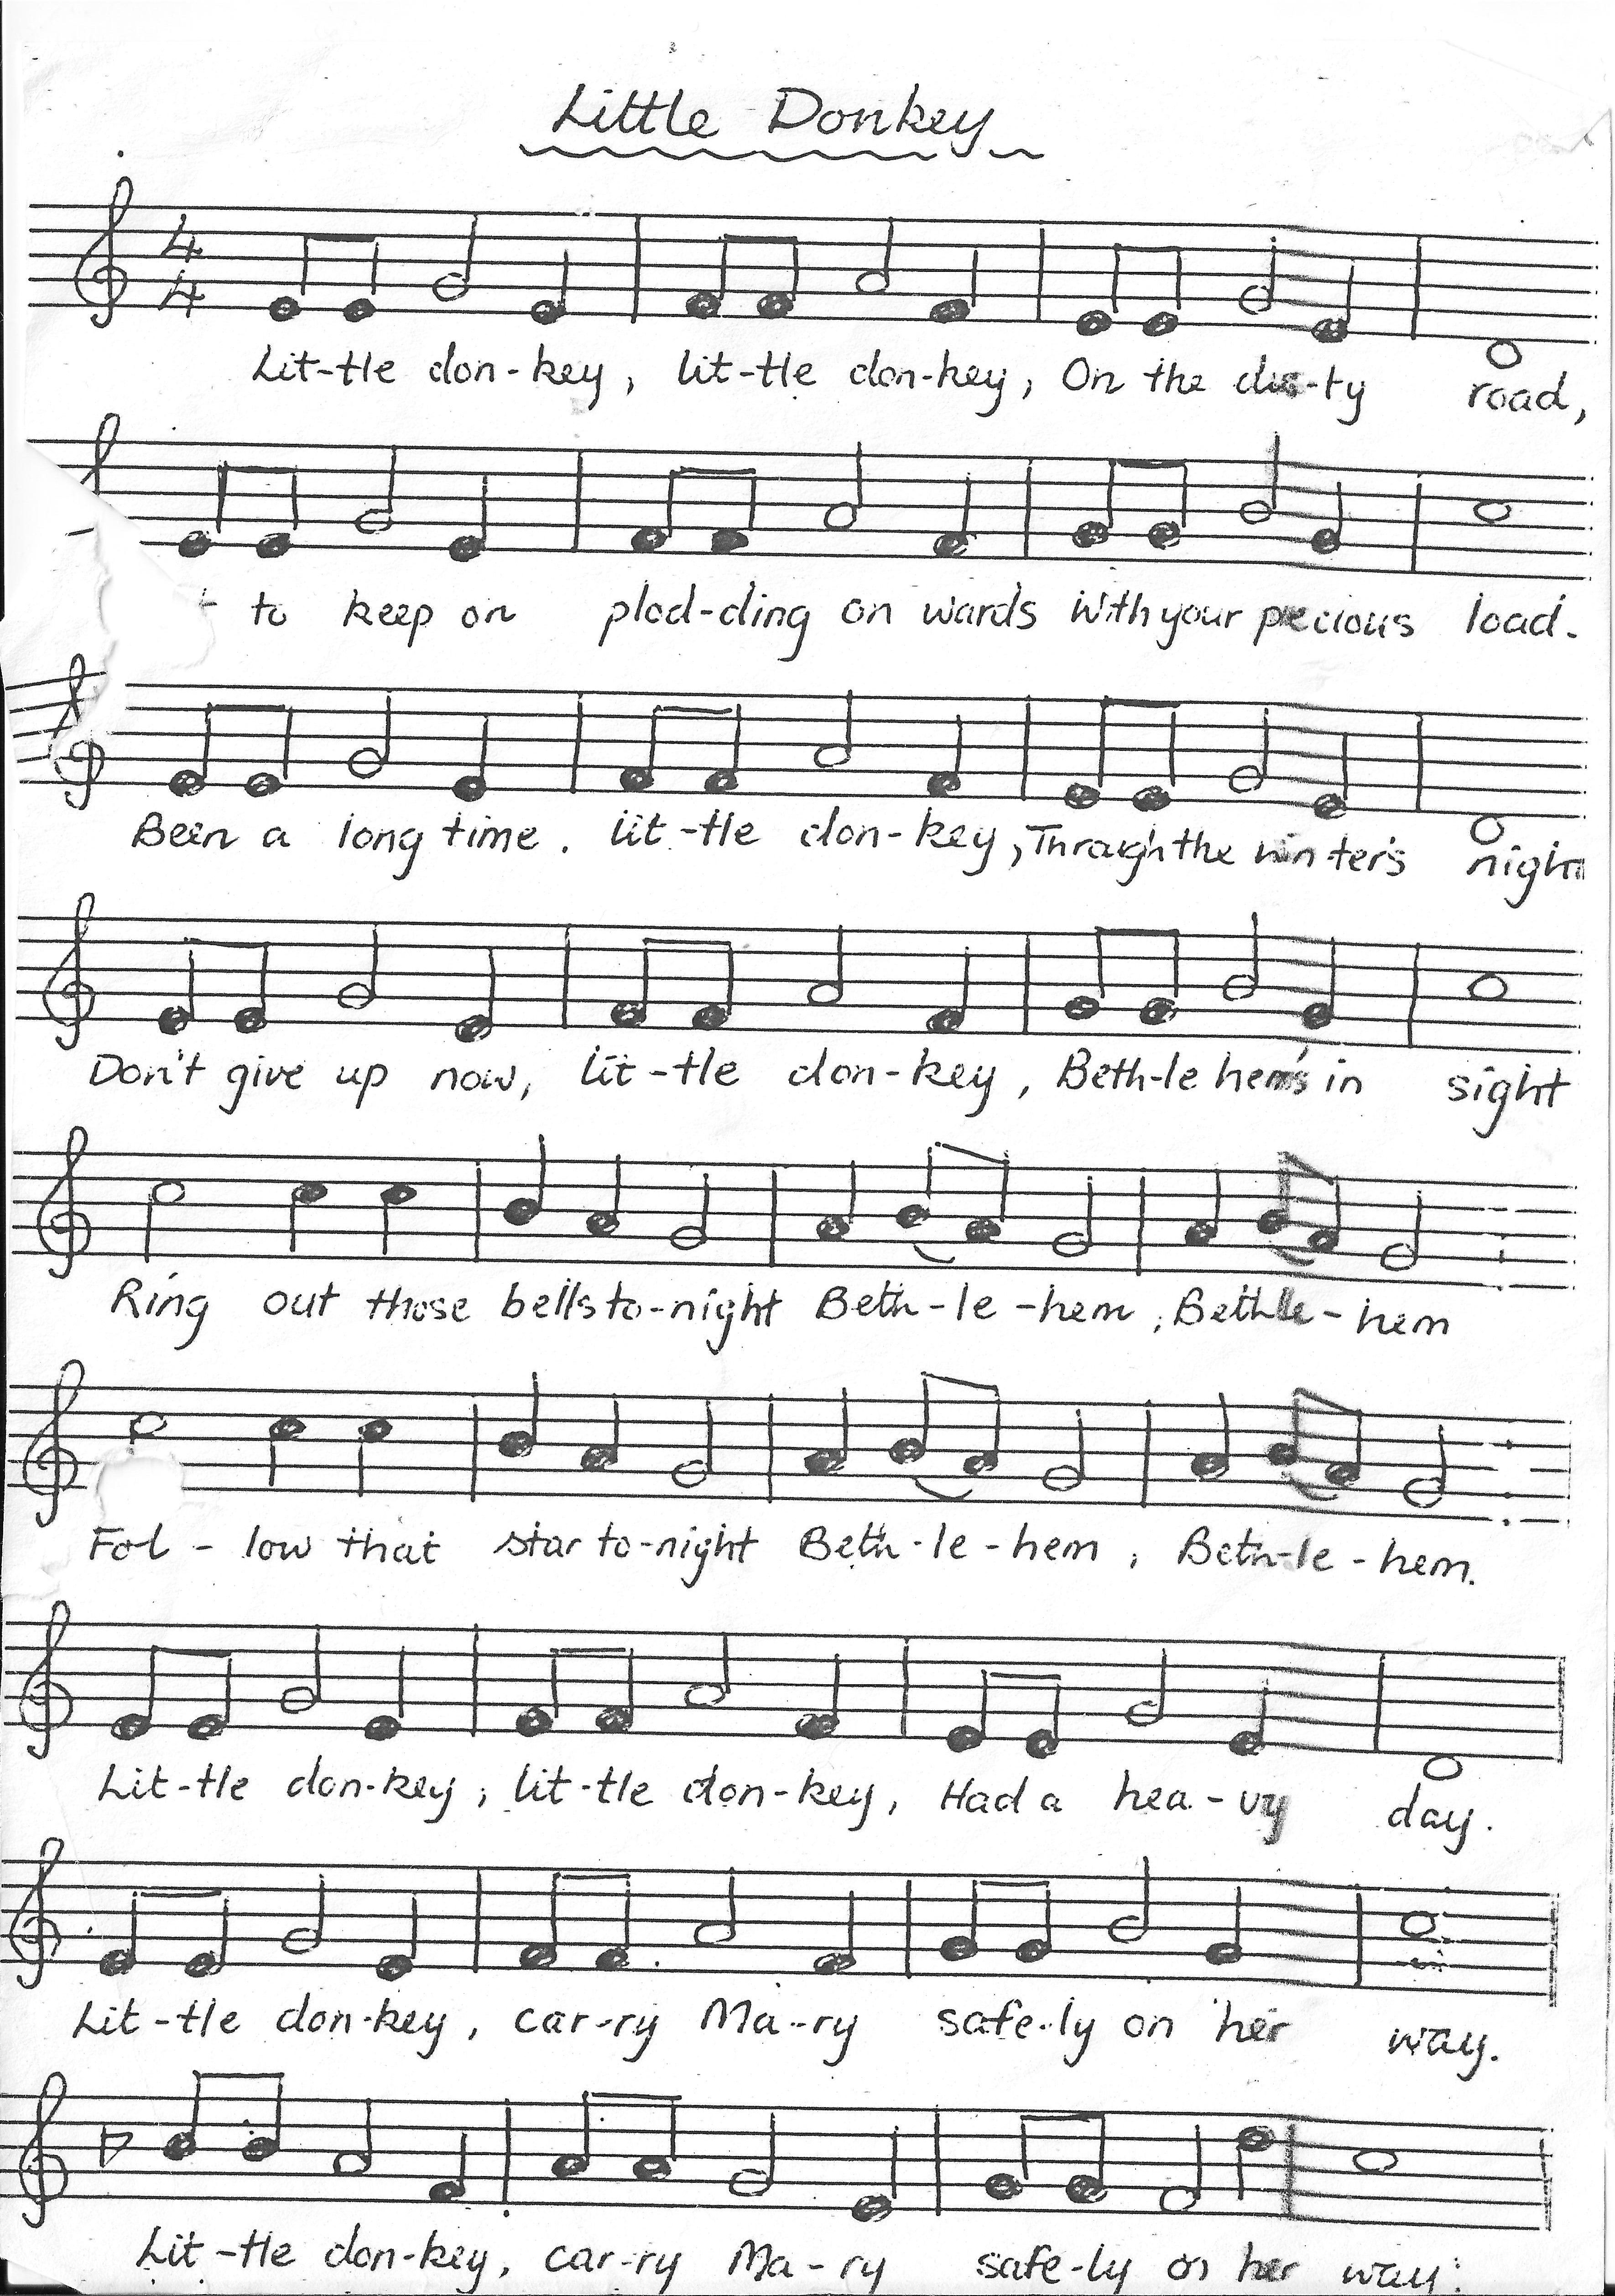 Little Donkey Christmas songs lyrics, Christmas sheet